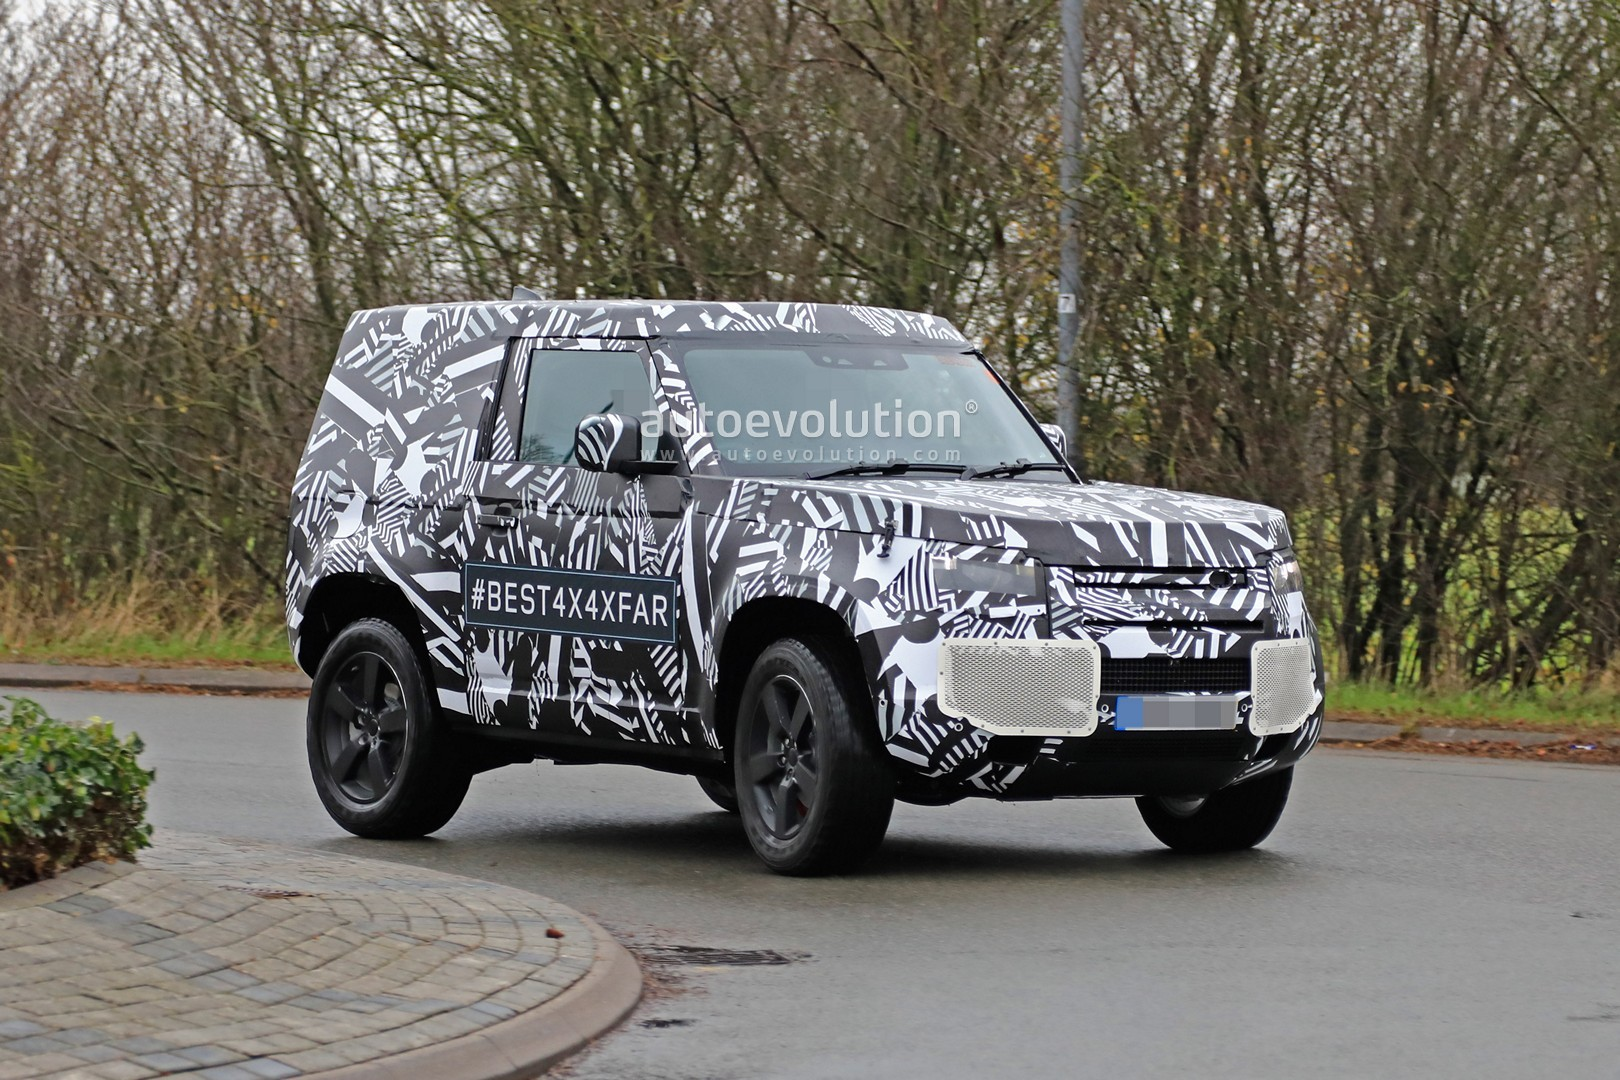 New Land Rover Defender 110 Teased Ahead Of 2019 World ...